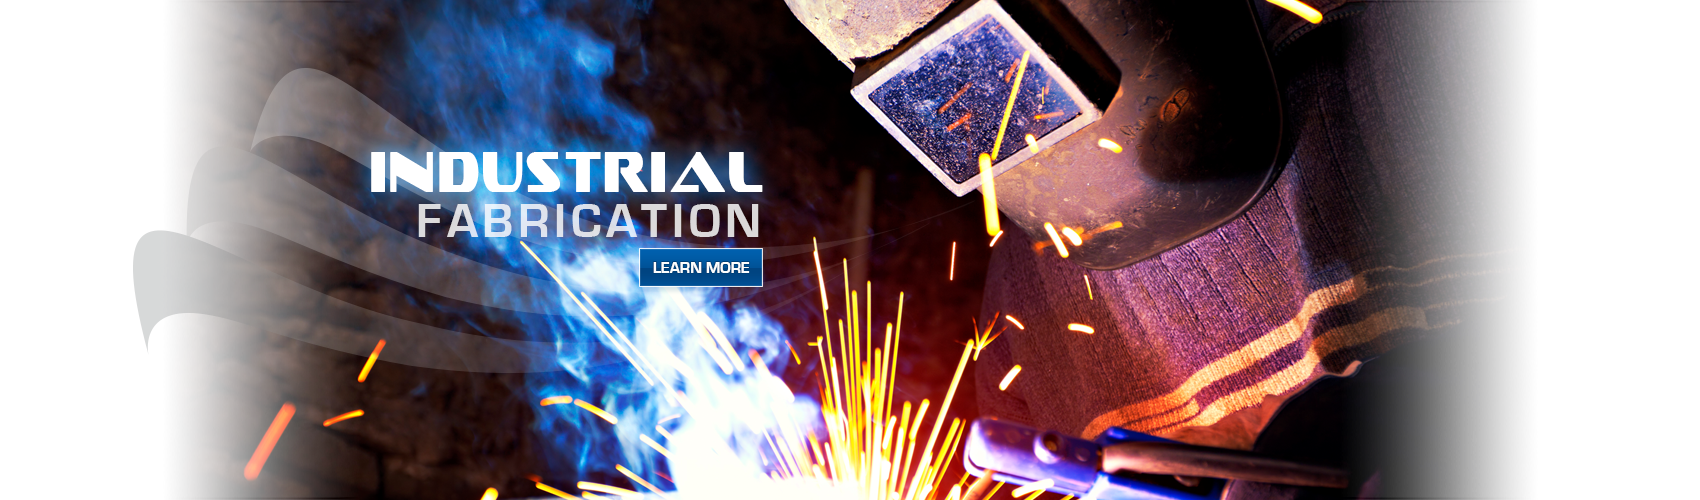 industrial-fabrication